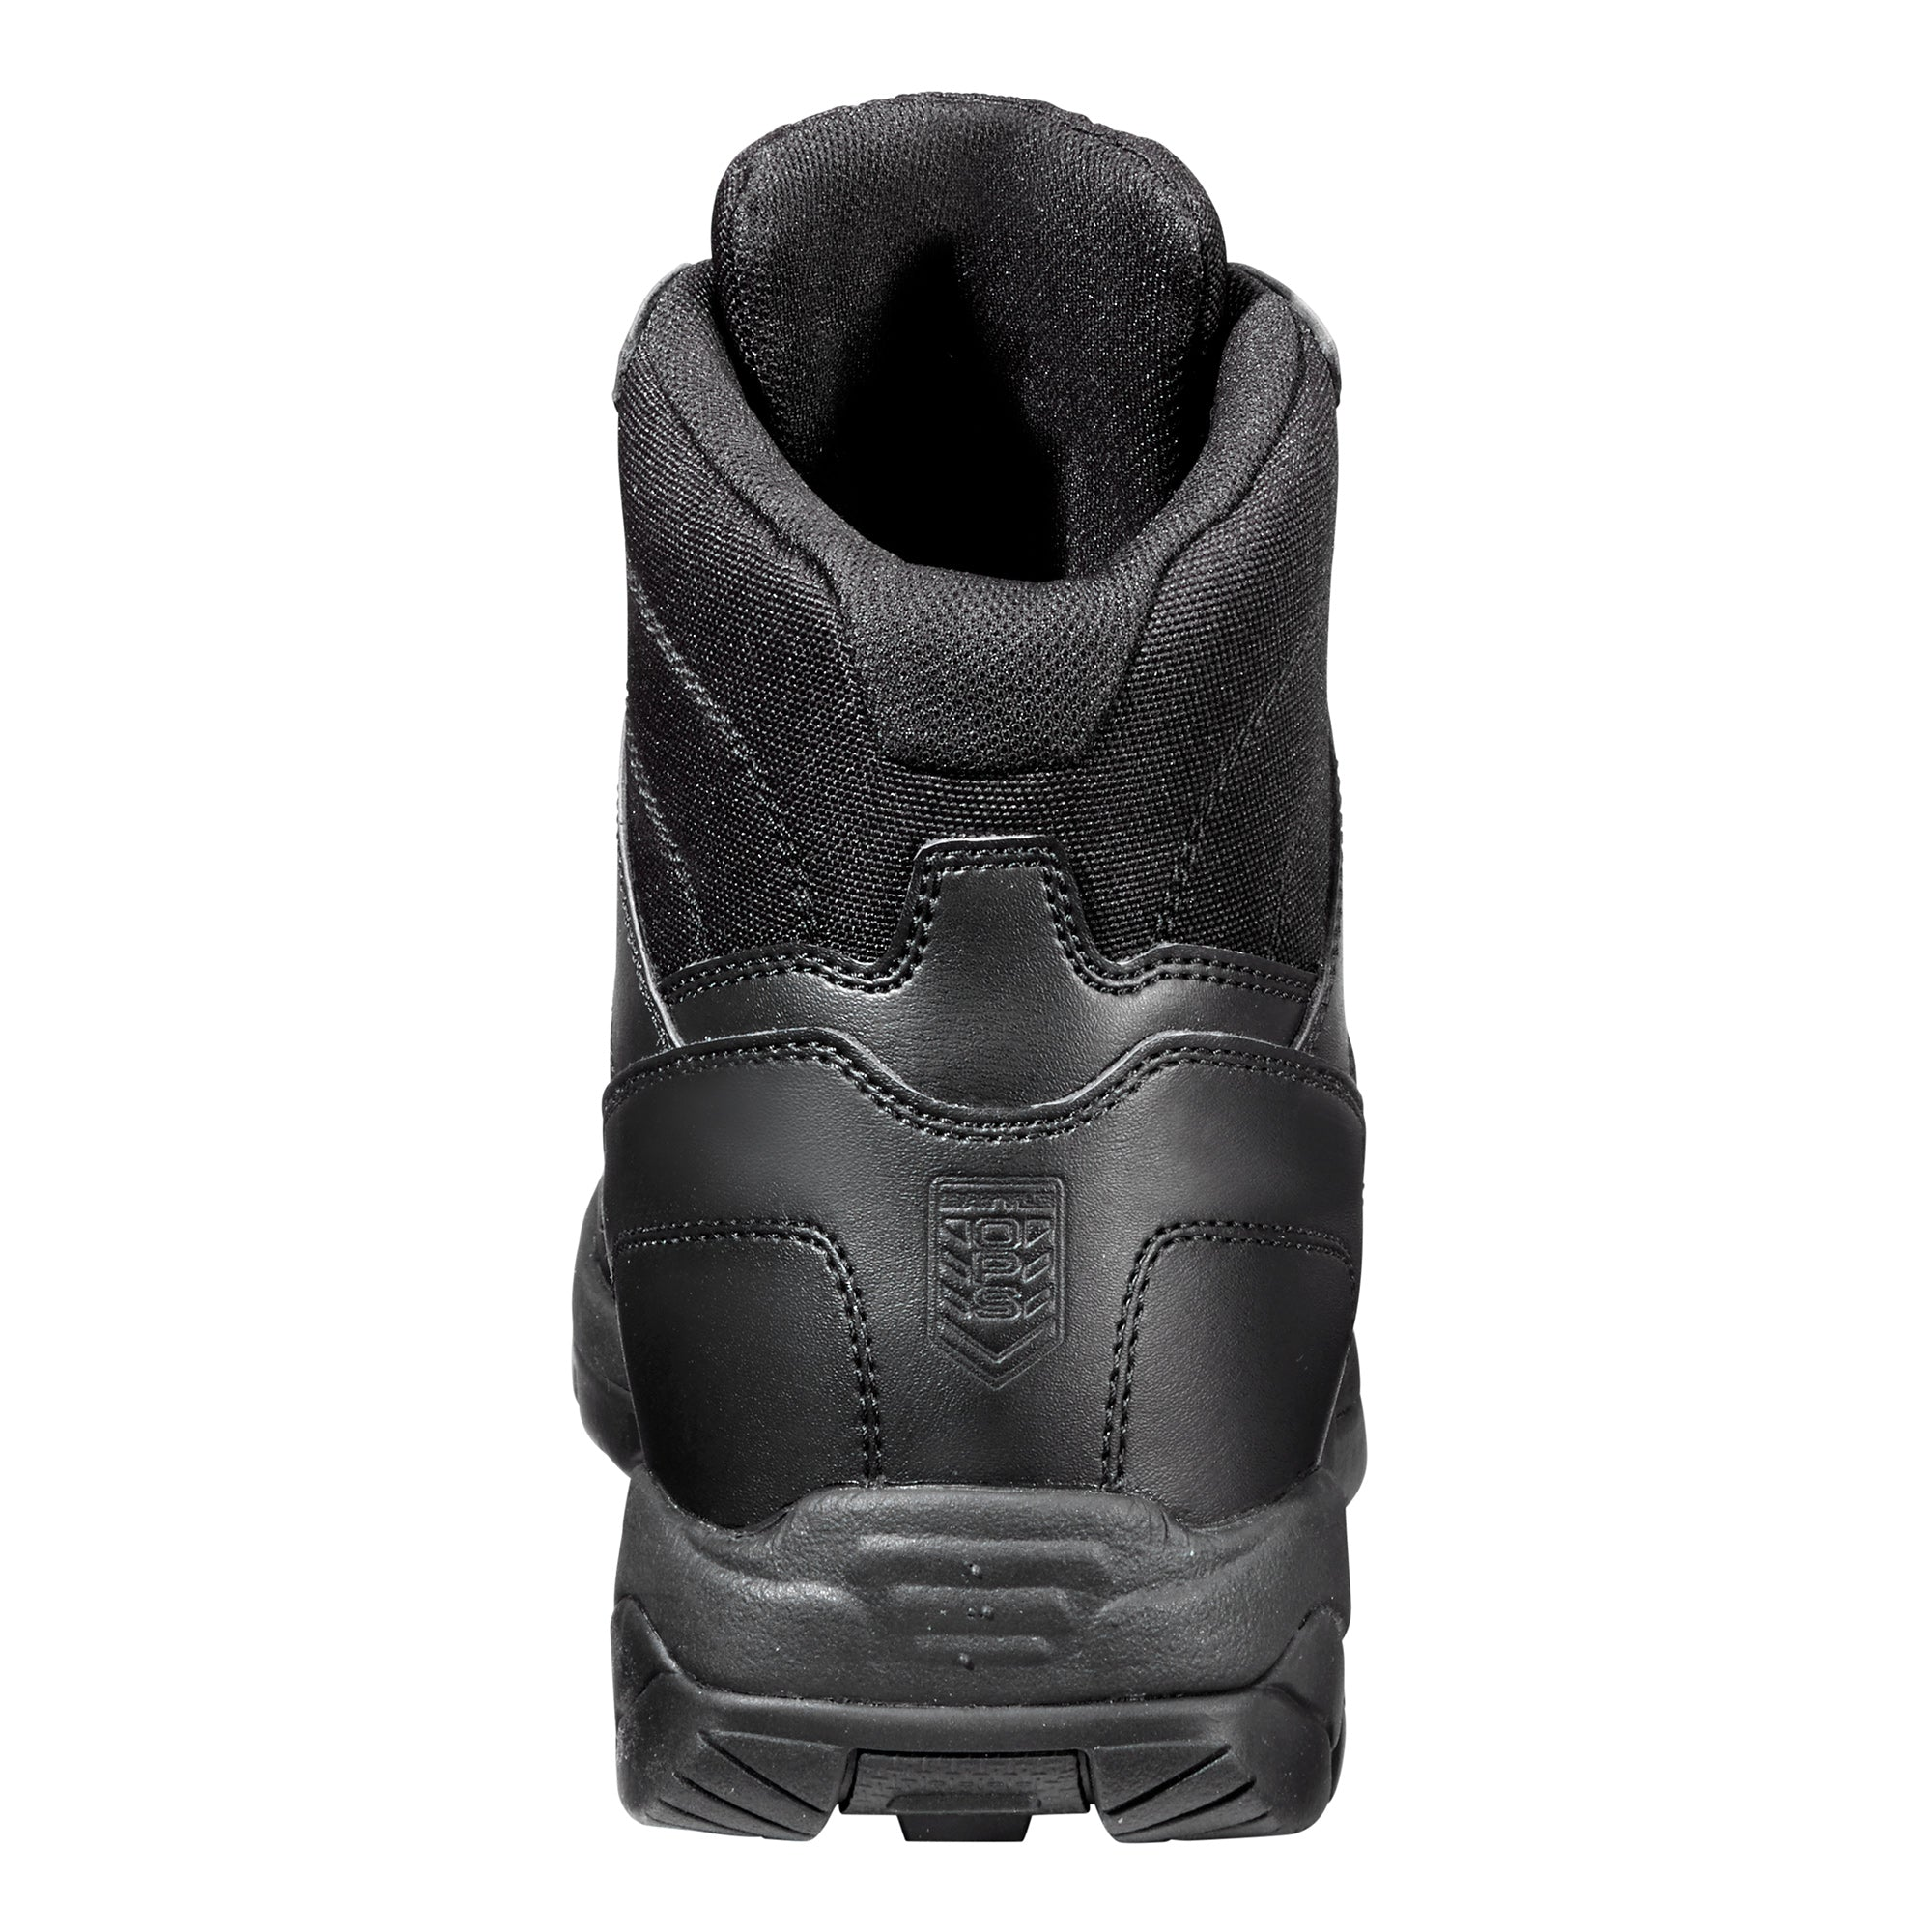 6-inch Waterproof Black Tactical Boot